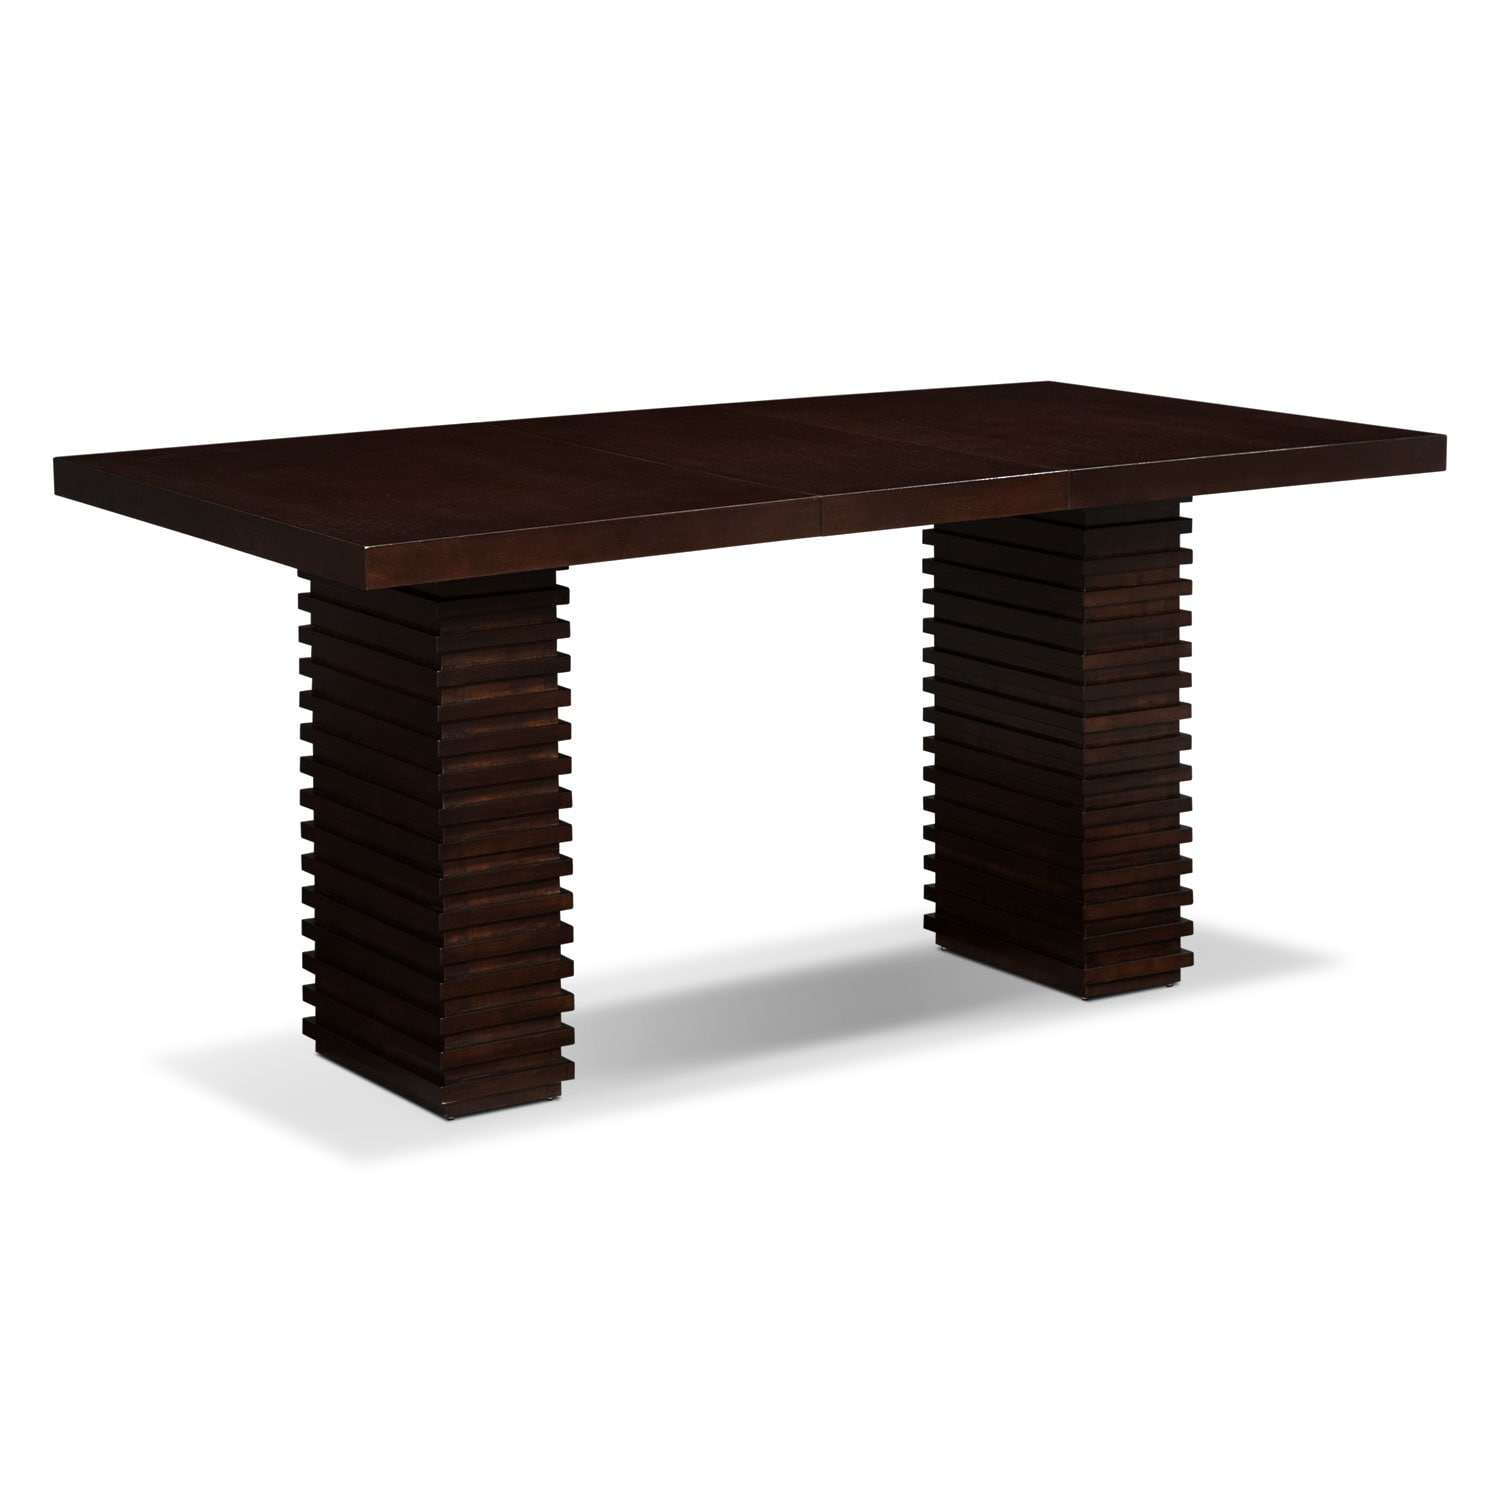 shop all dining room tables value city furniture Value City Furniture Living Room Sets Value City Furniture Kitchen Tables